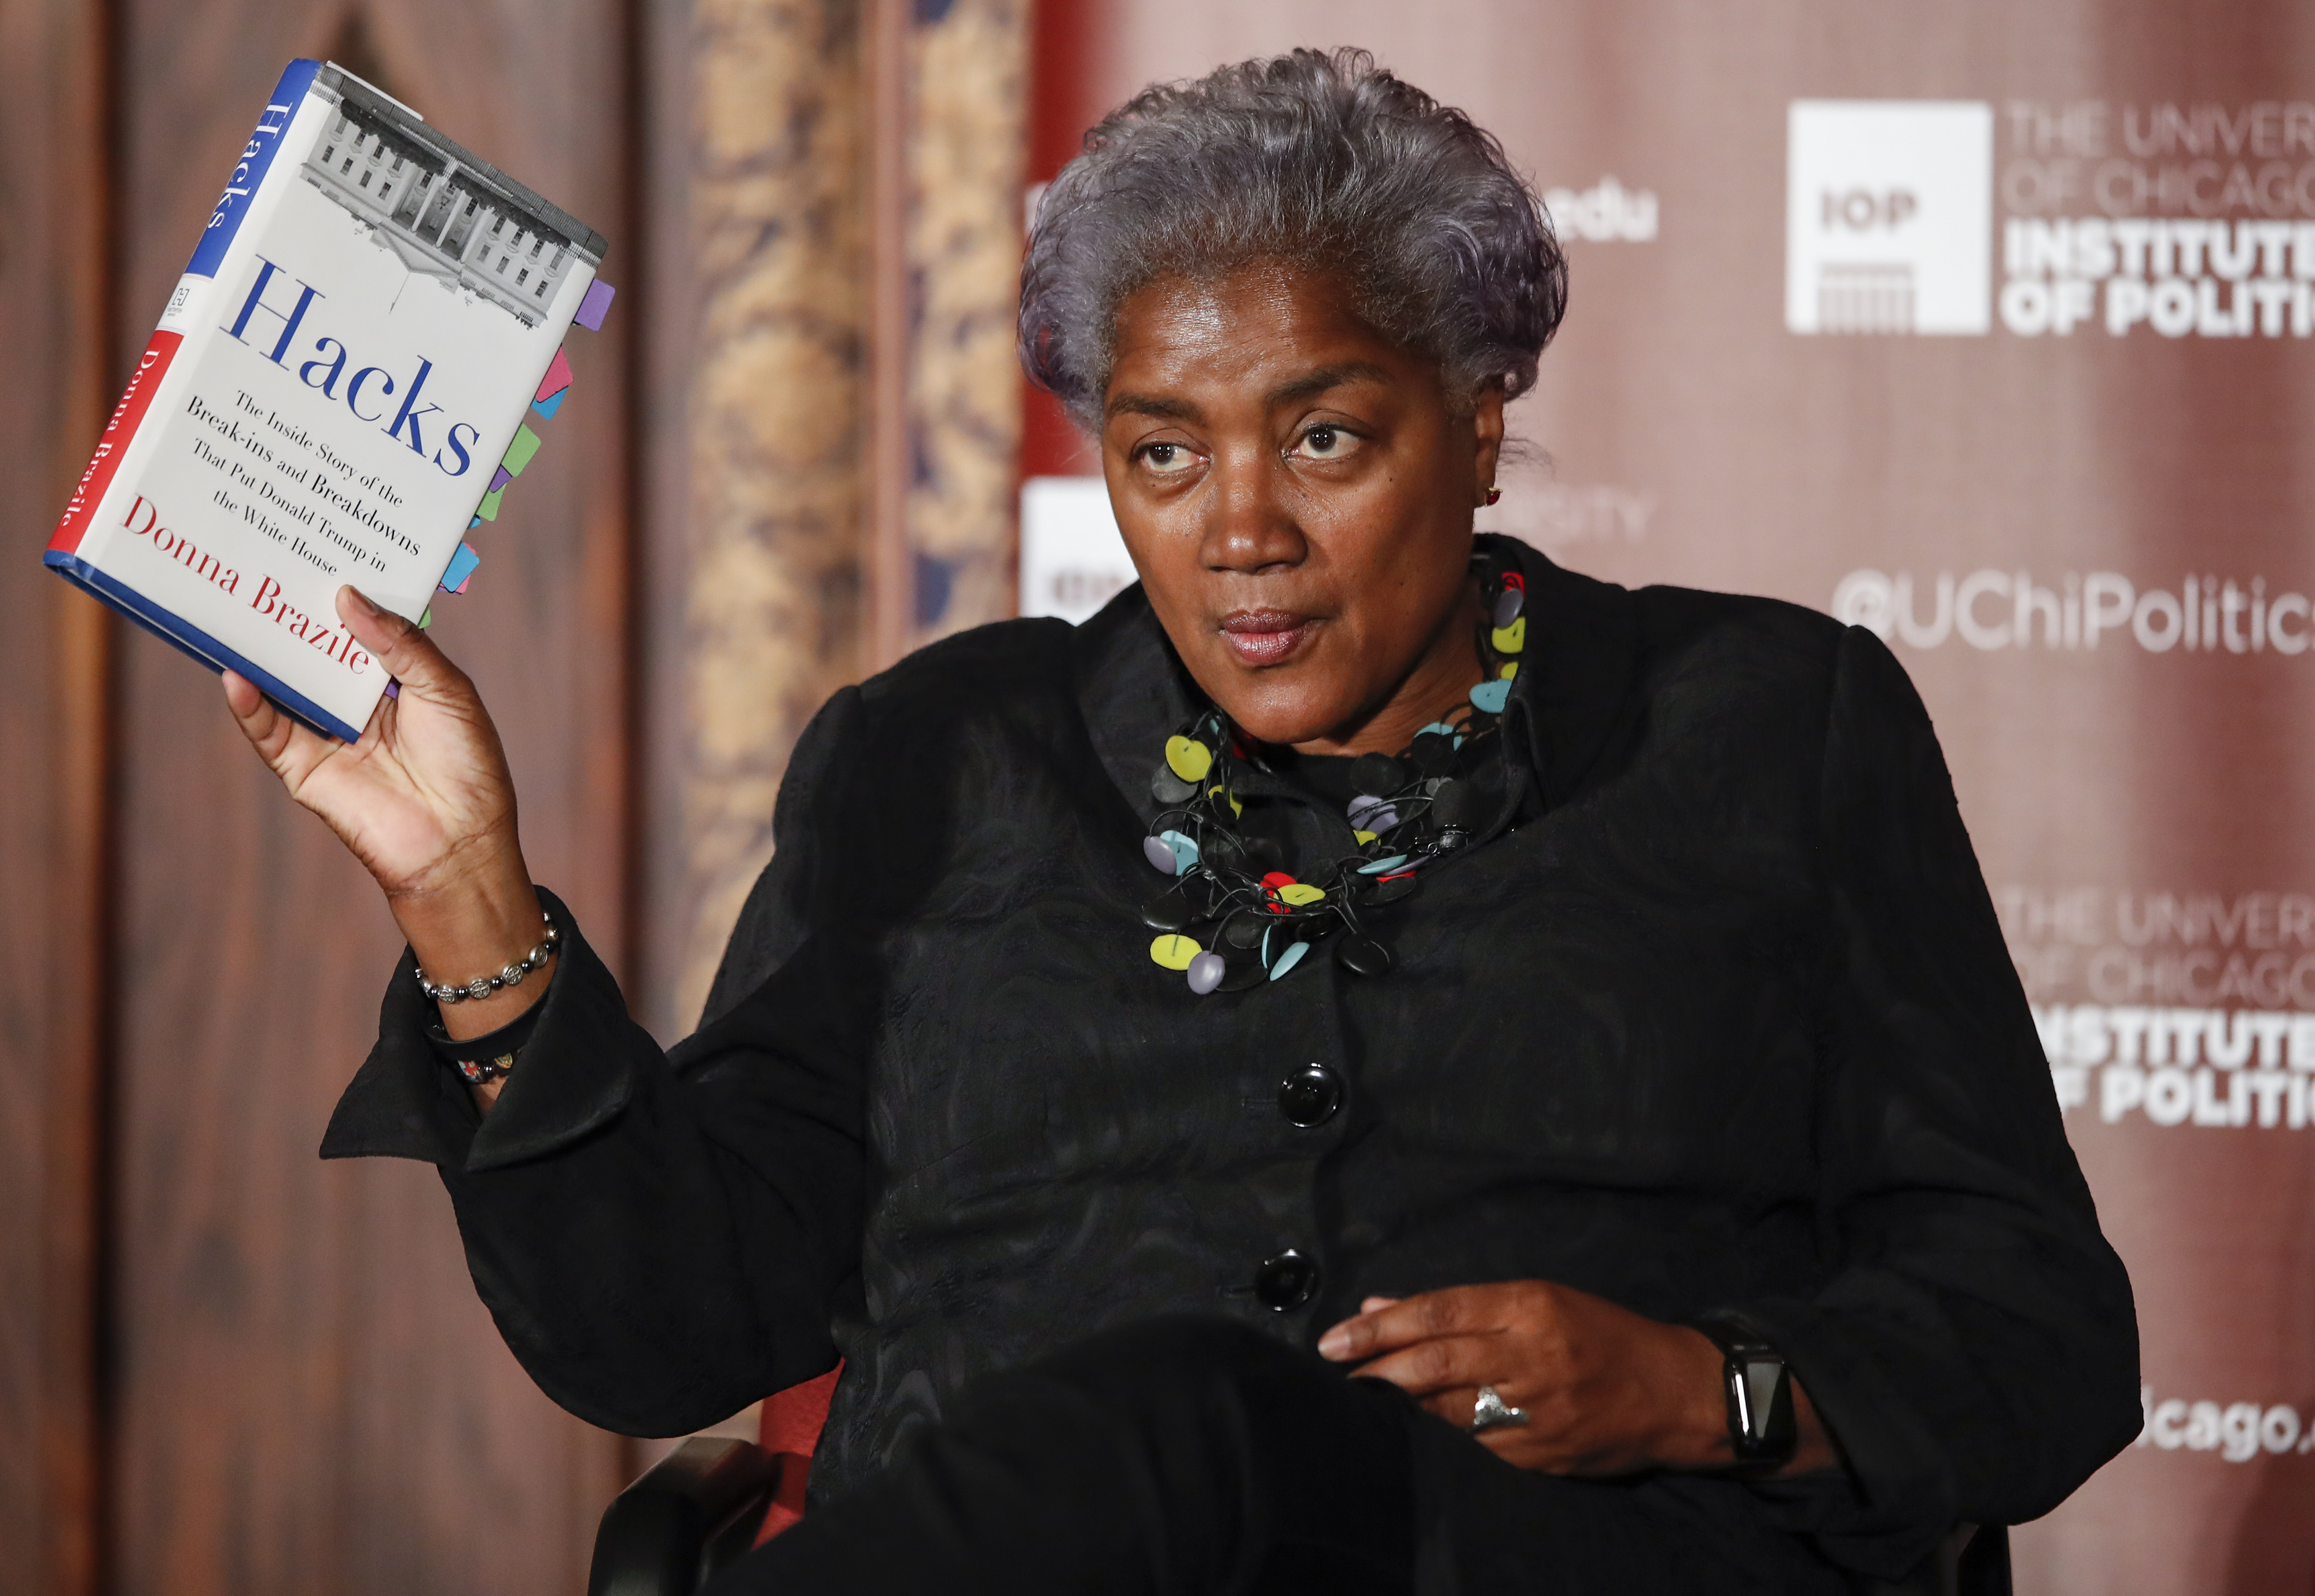 Former DNC Chair Donna Brazile speaks at The University of Chicago on November 13, 2017 in Chicago, Illinois. Brazile recently released her book 'Hacks: The Inside Story,' an account of her time as the interim chairperson of the Democratic National Committee during the 2016 presidential campaign. (Photo by Kamil Krzaczynski/Getty Images)